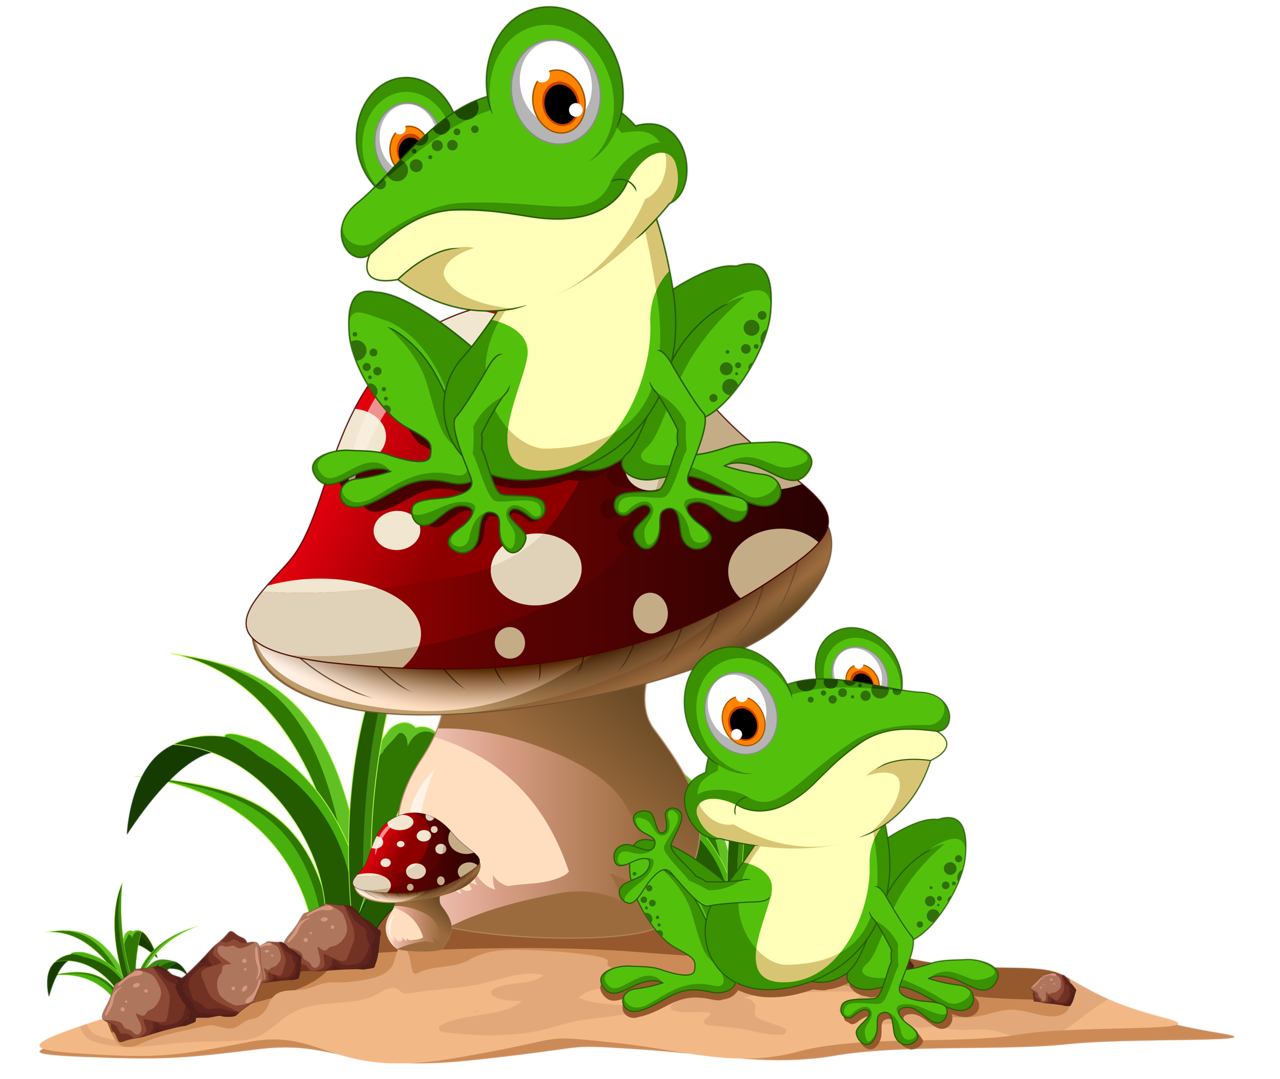 Лягушки | Frog Clip Art | Frog tattoos, Frog art, Green frog